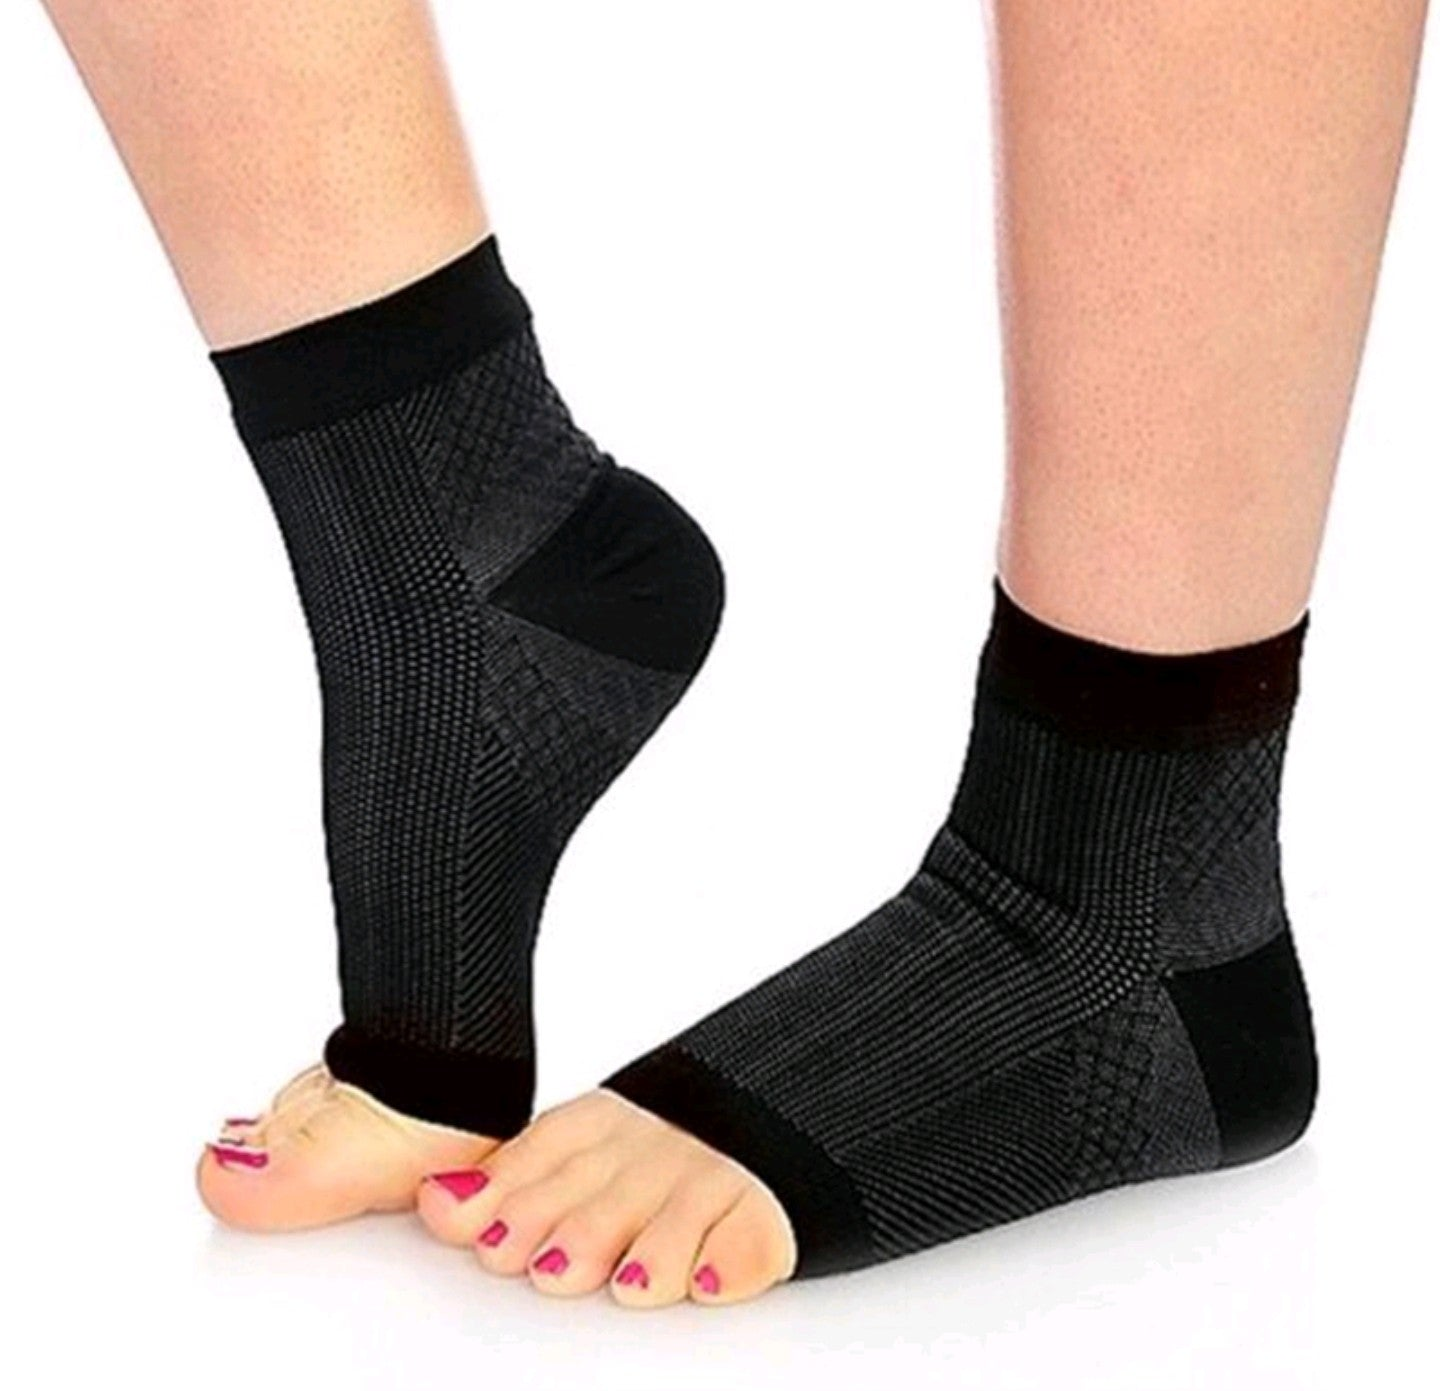 2017 New Foot Angel Women/Men Anti Fatigue Compression Foot Sleeve